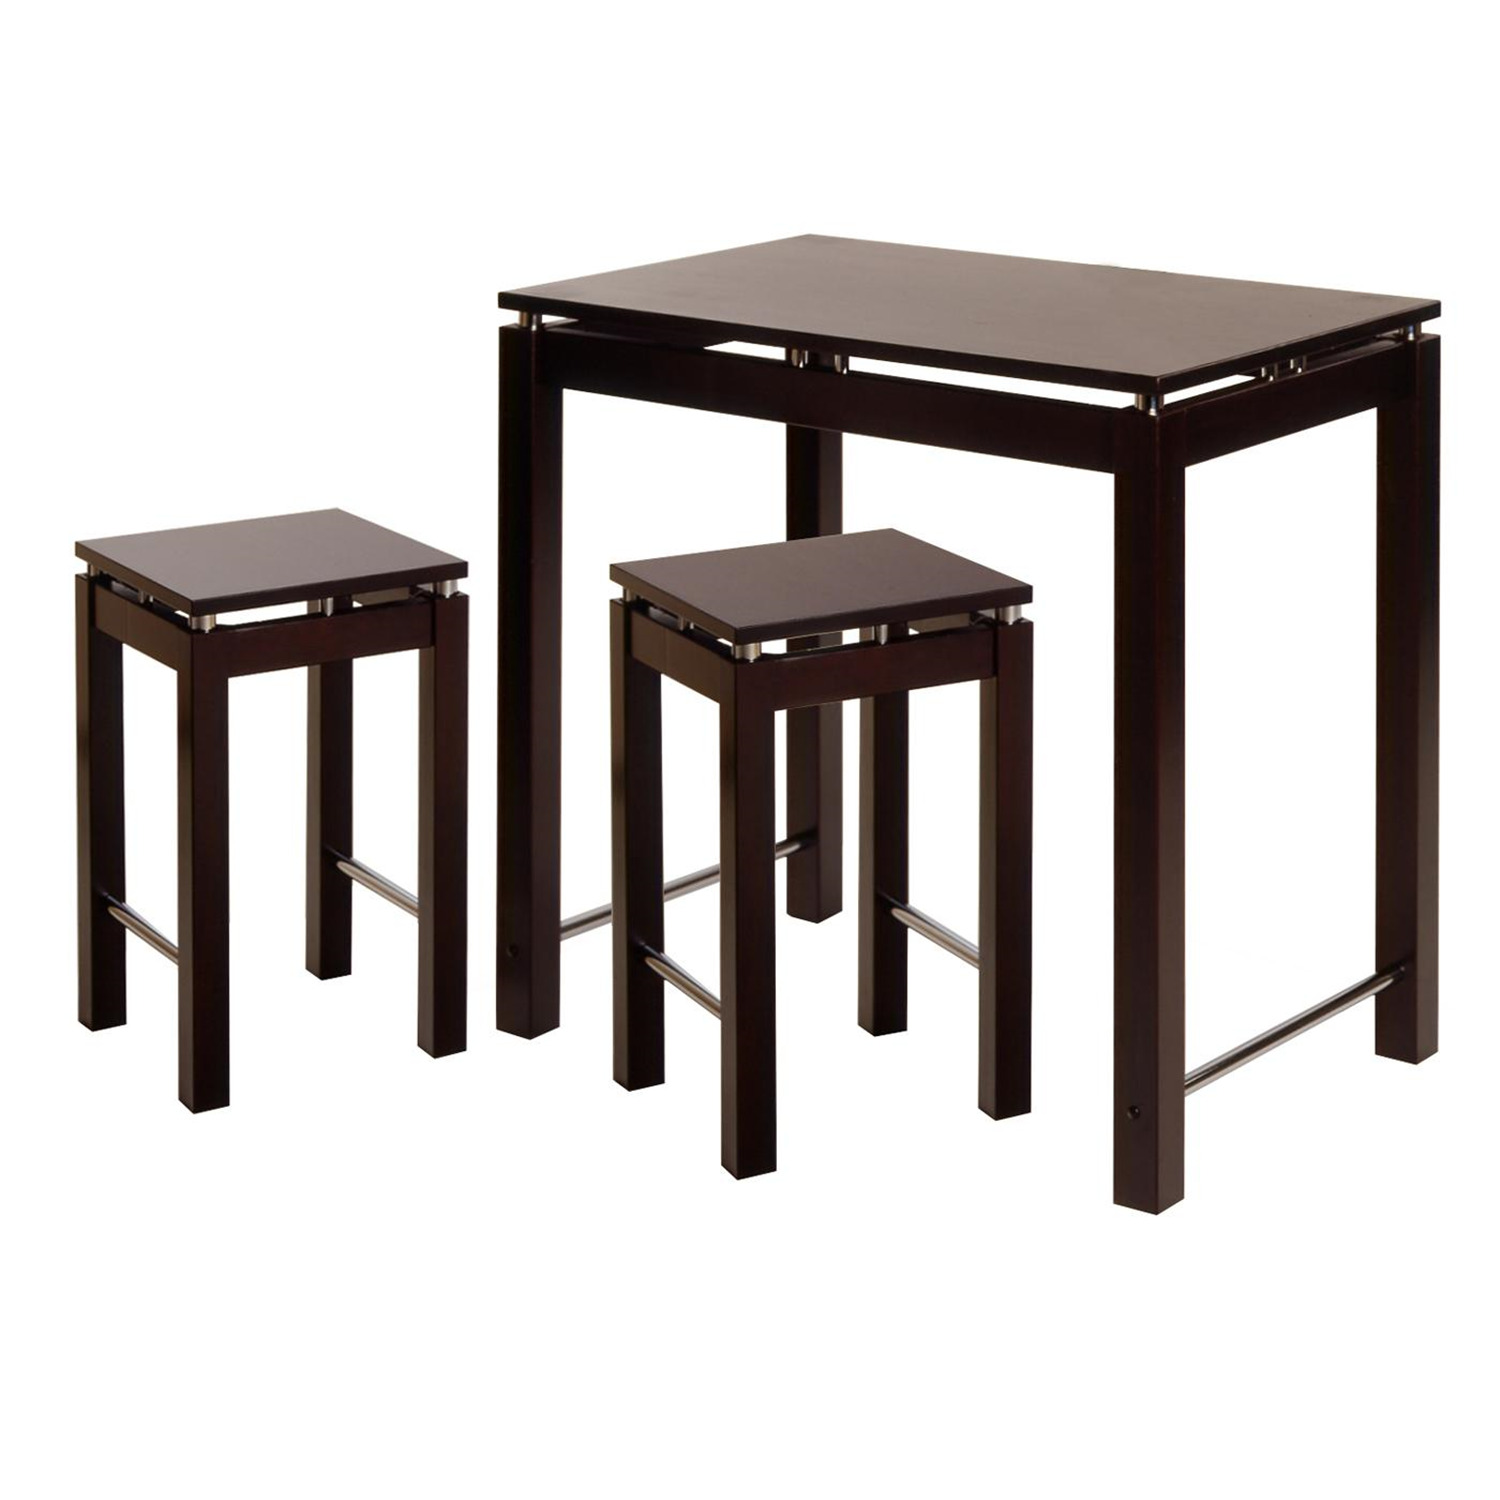 Linea 3pc pub kitchen set island table with 2 stools for Furniture kitchen set